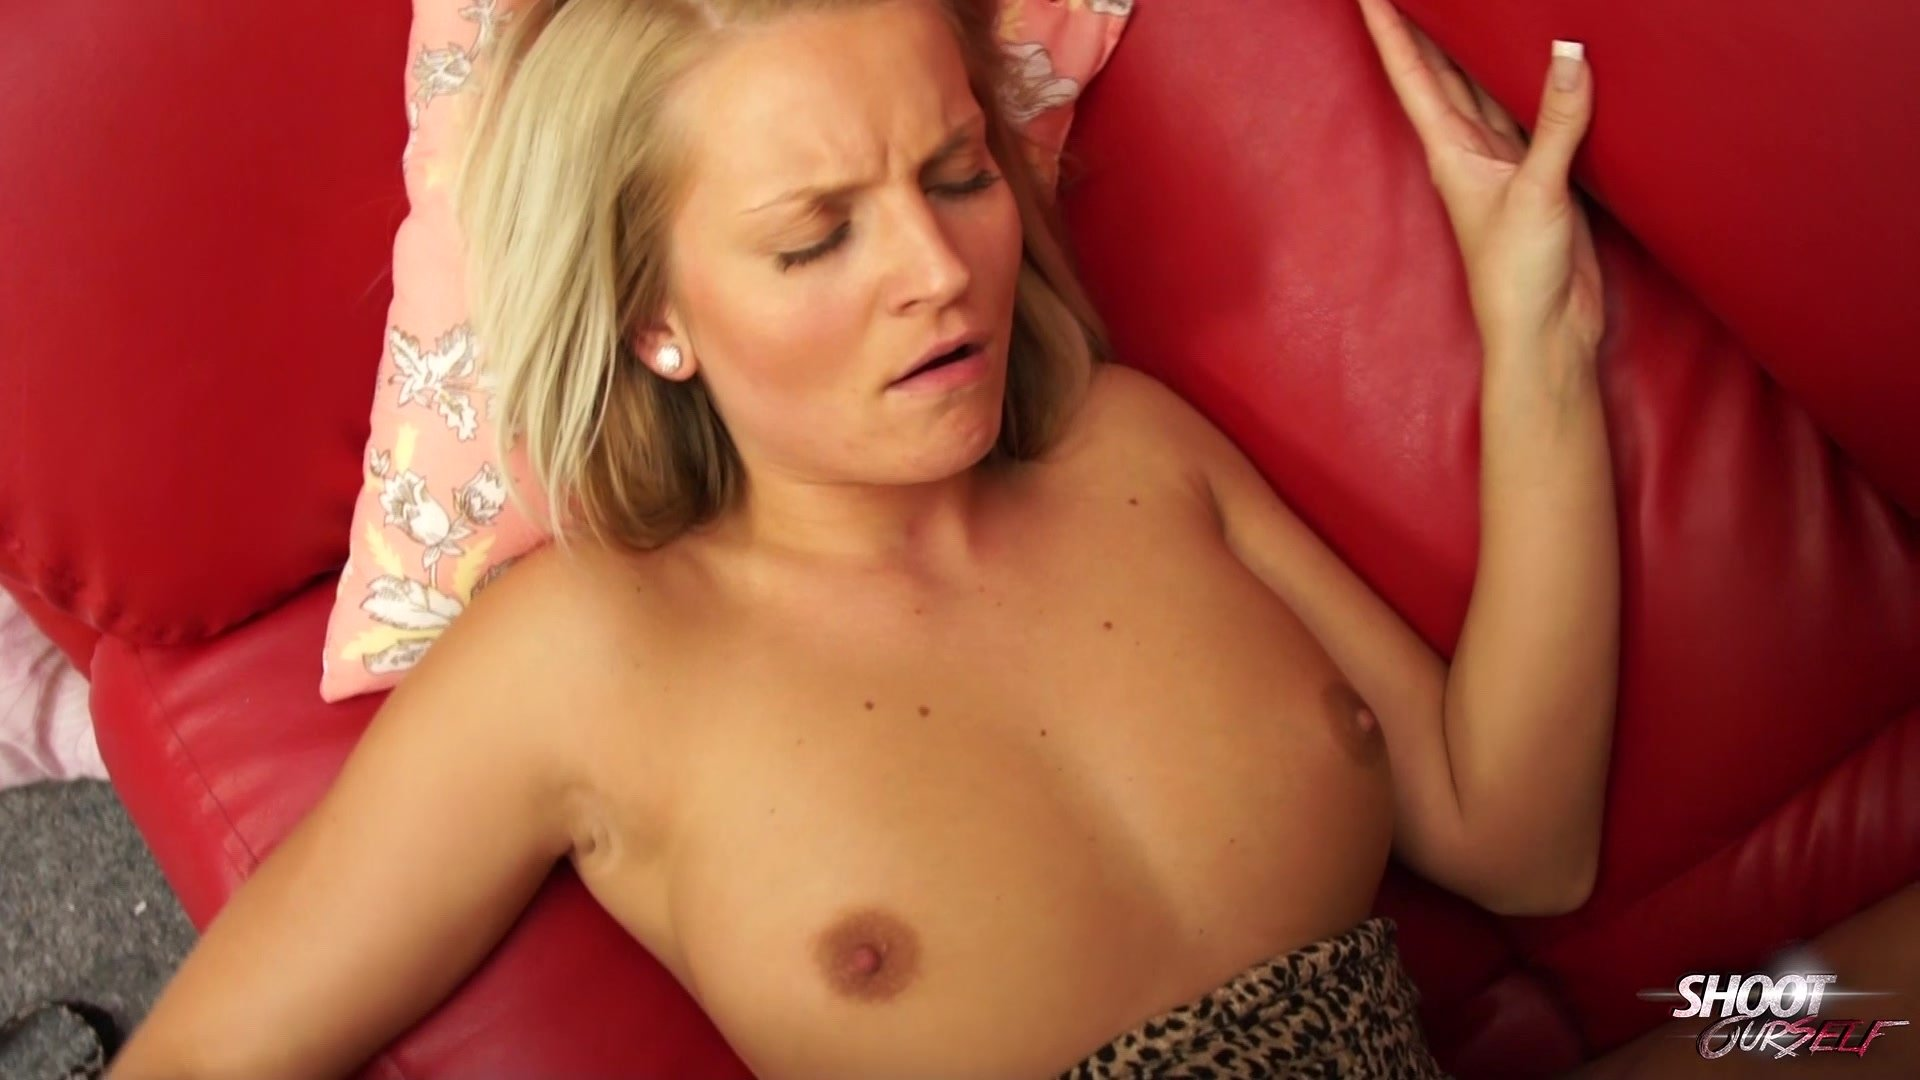 Anal fisting how to amateur